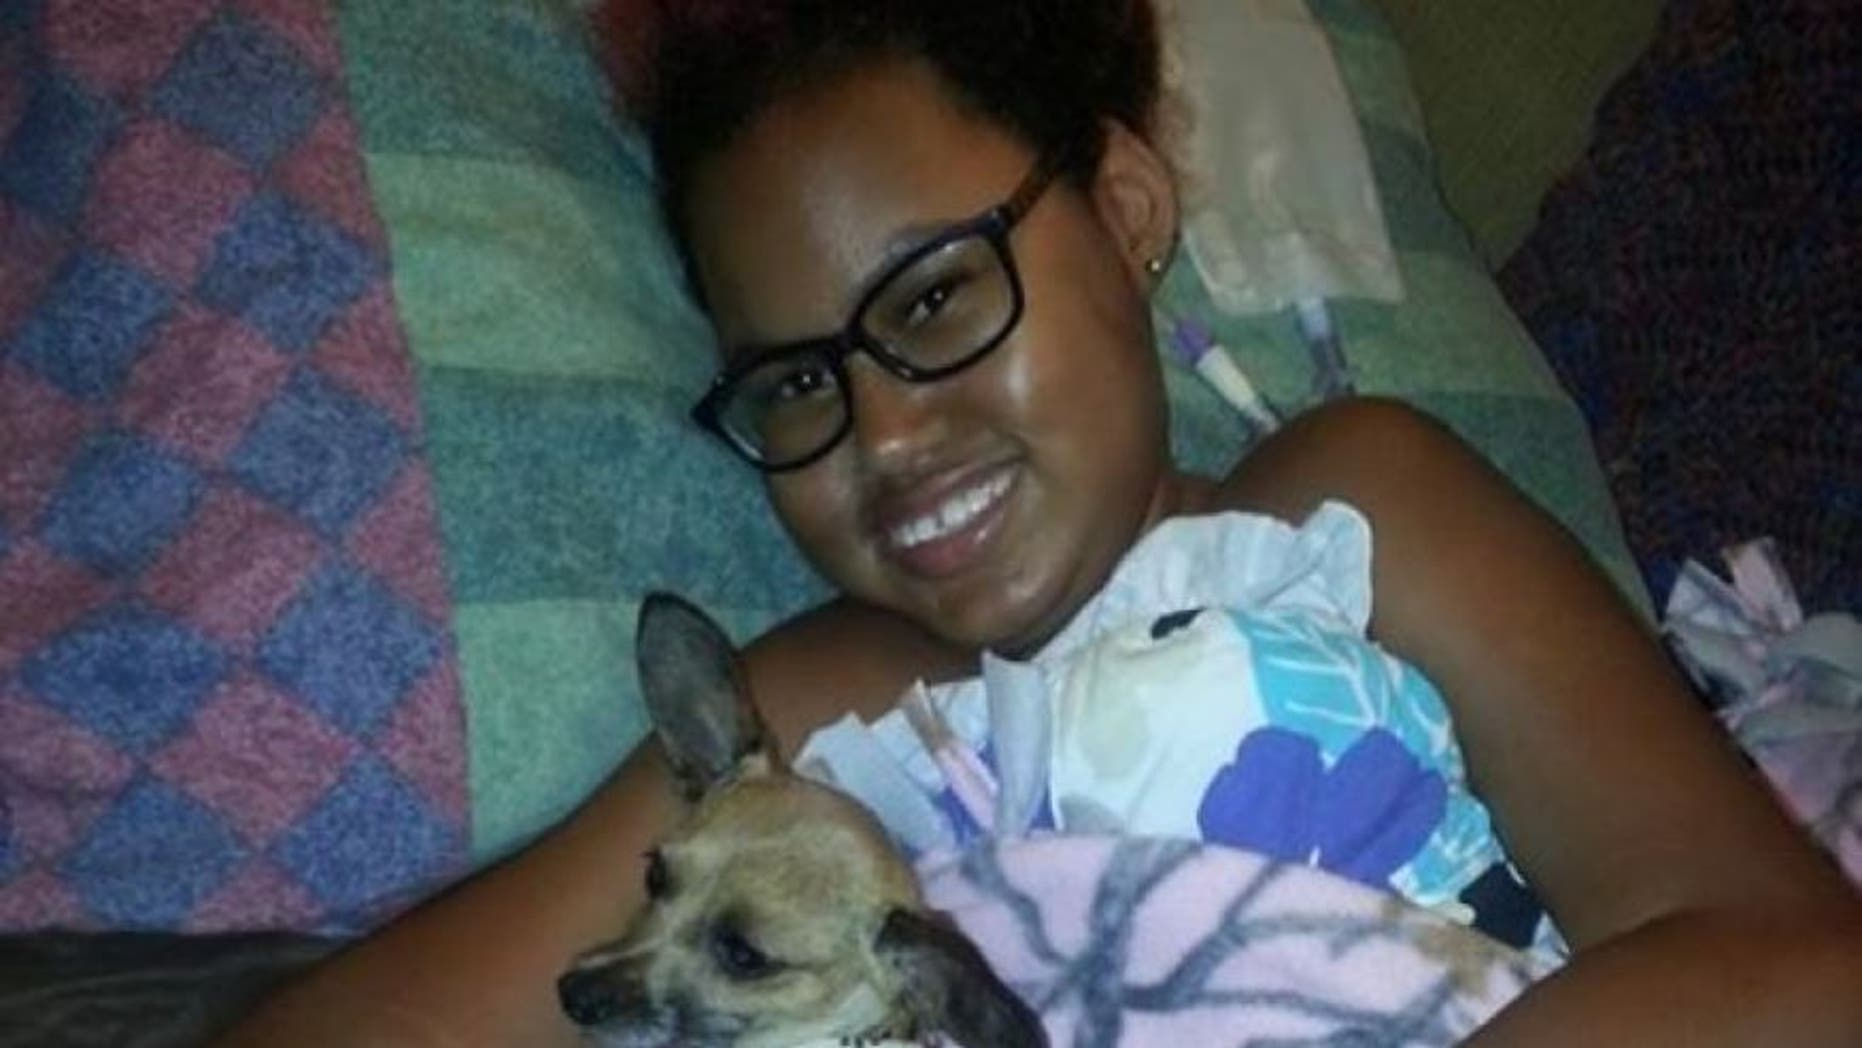 Jerika Bolen, 14, decided to enter hospice rather than undergo more surgery.